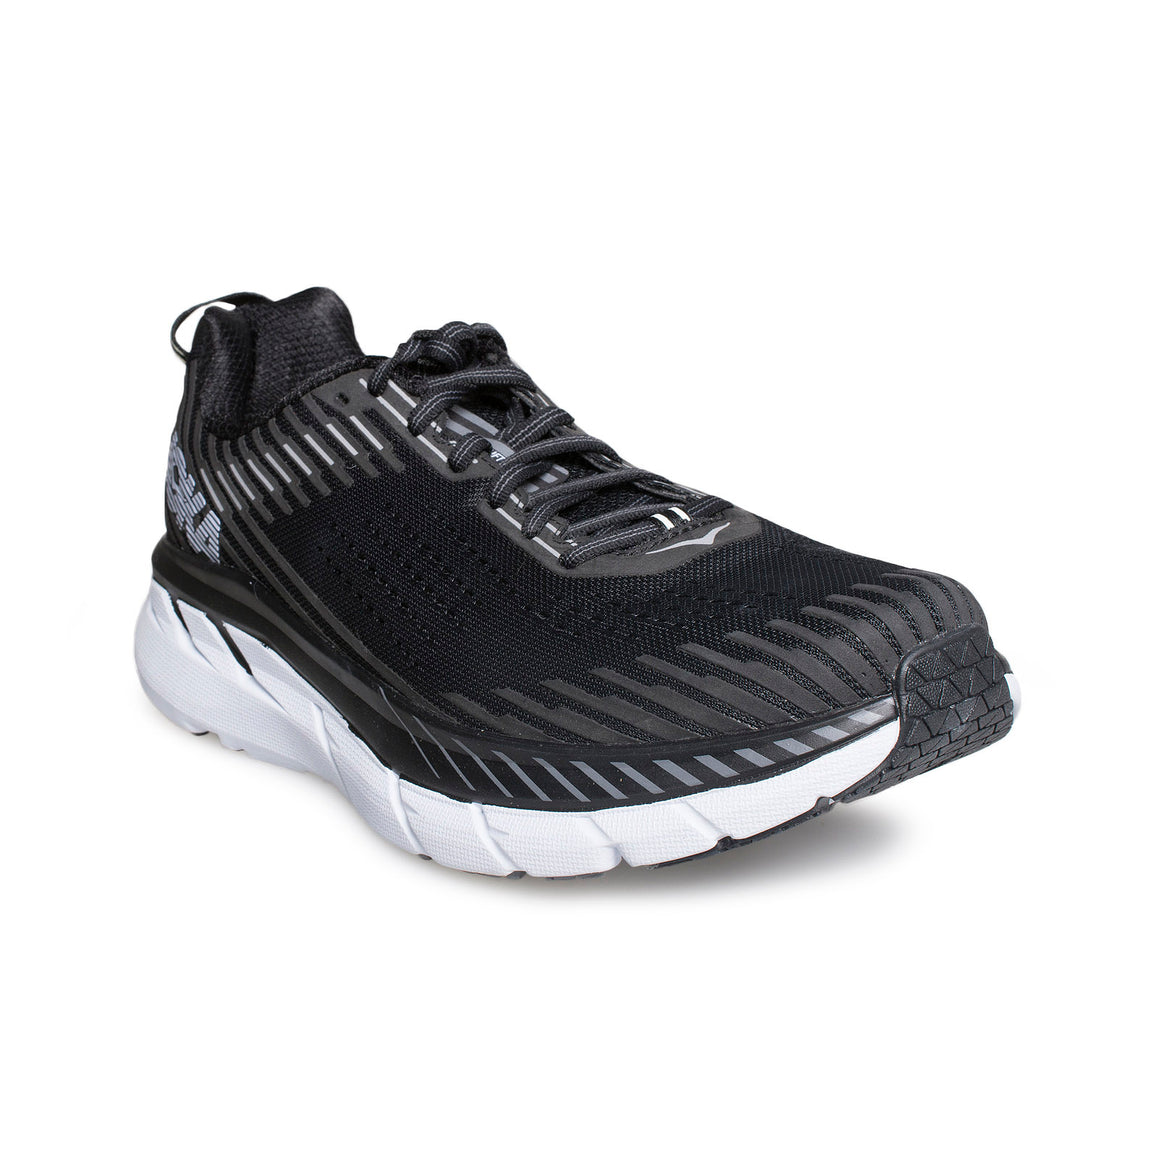 HOKA Clifton 5 Black / White Shoes - Men's